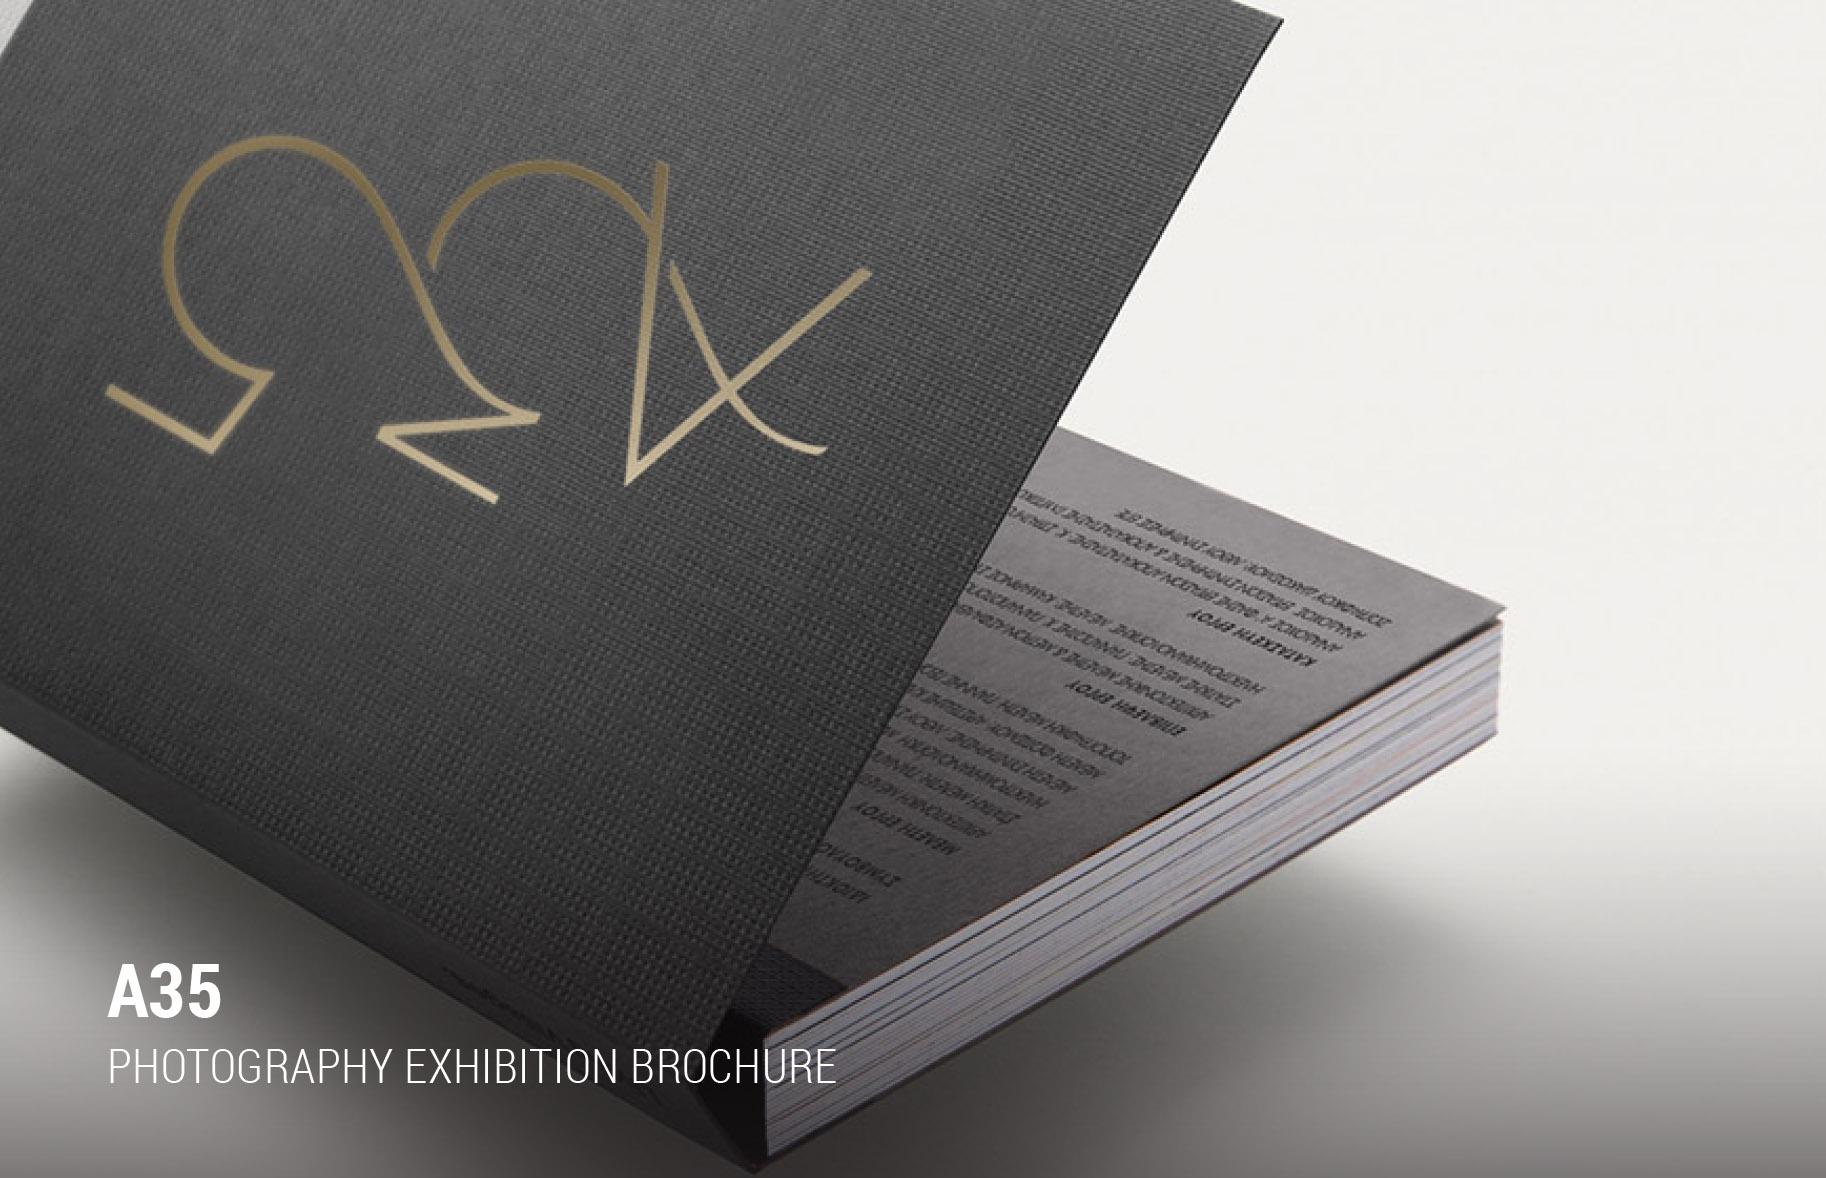 Schema Dimitra Chrona designer, creative director, architectural, 3D visualization, 3D Rendering, branding websites, digital, graphic design, interior design, real estate, luxury property, staging, museum, virtual, art, brochures, exhibitions, logotype, logo, Canada Quebec Montreal Athens Greece schema design a35 heritage building brochure large.jpg